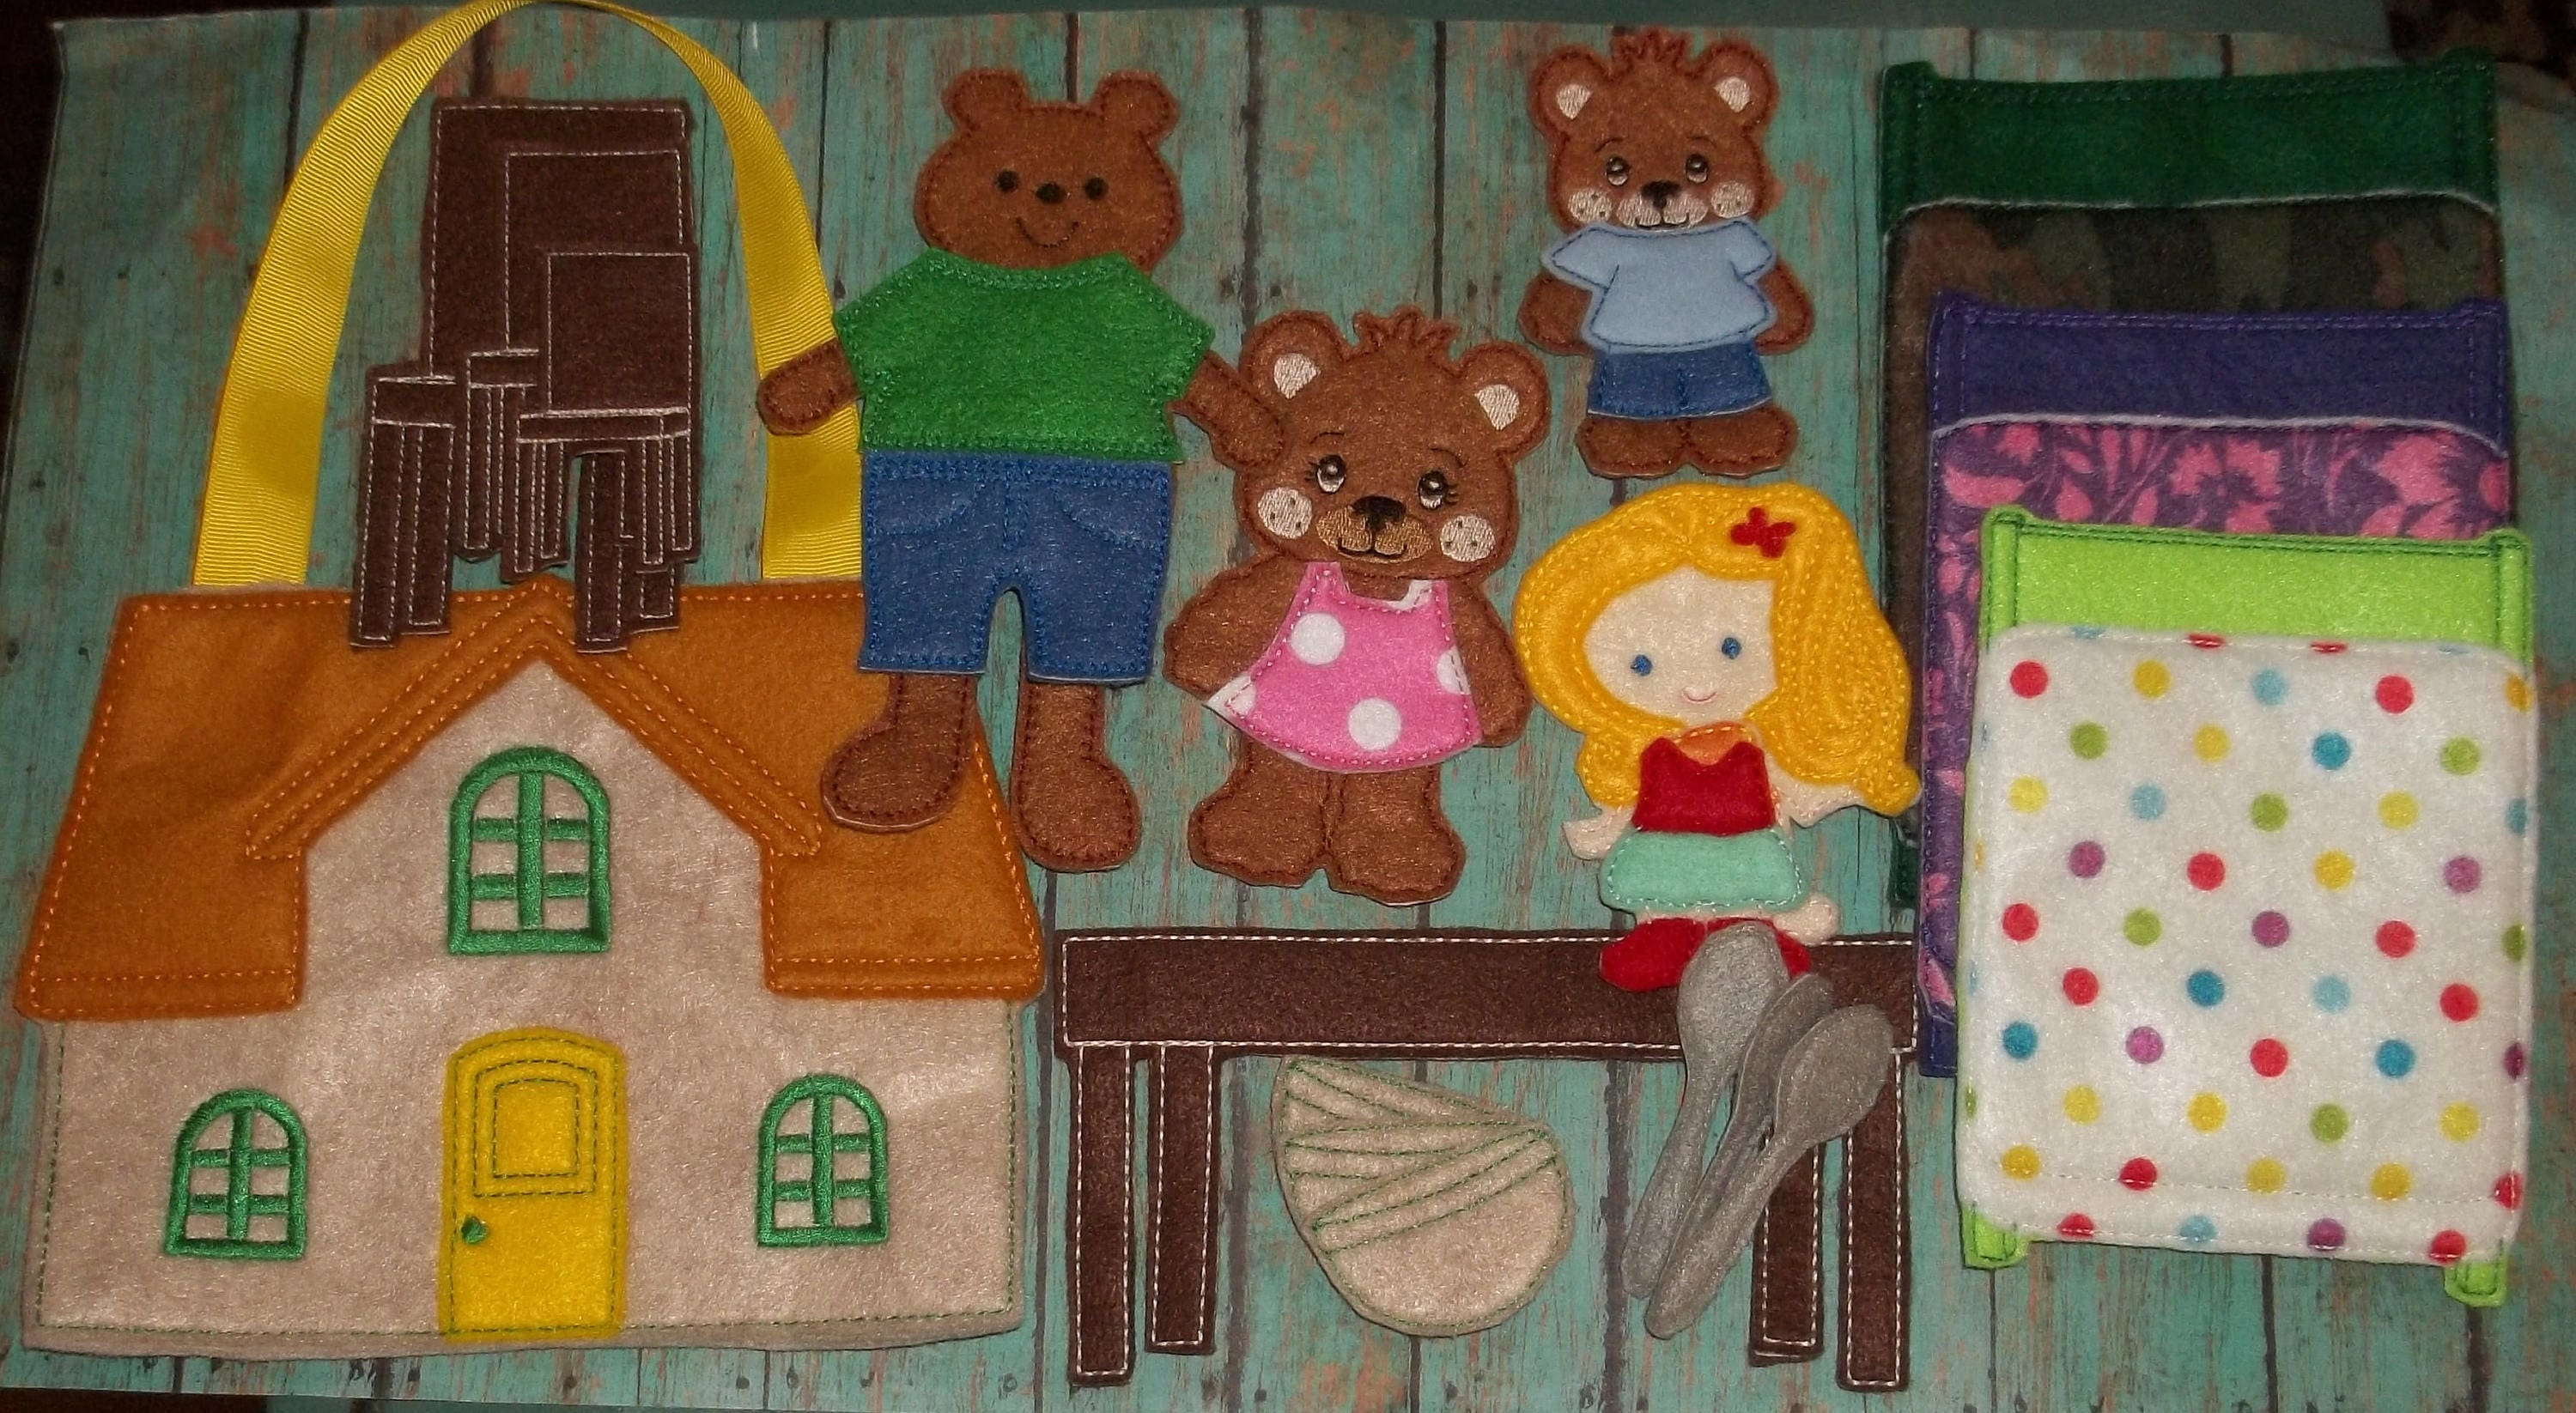 Goldilocks Three Bears Felt Board Flannel Board Set Busy